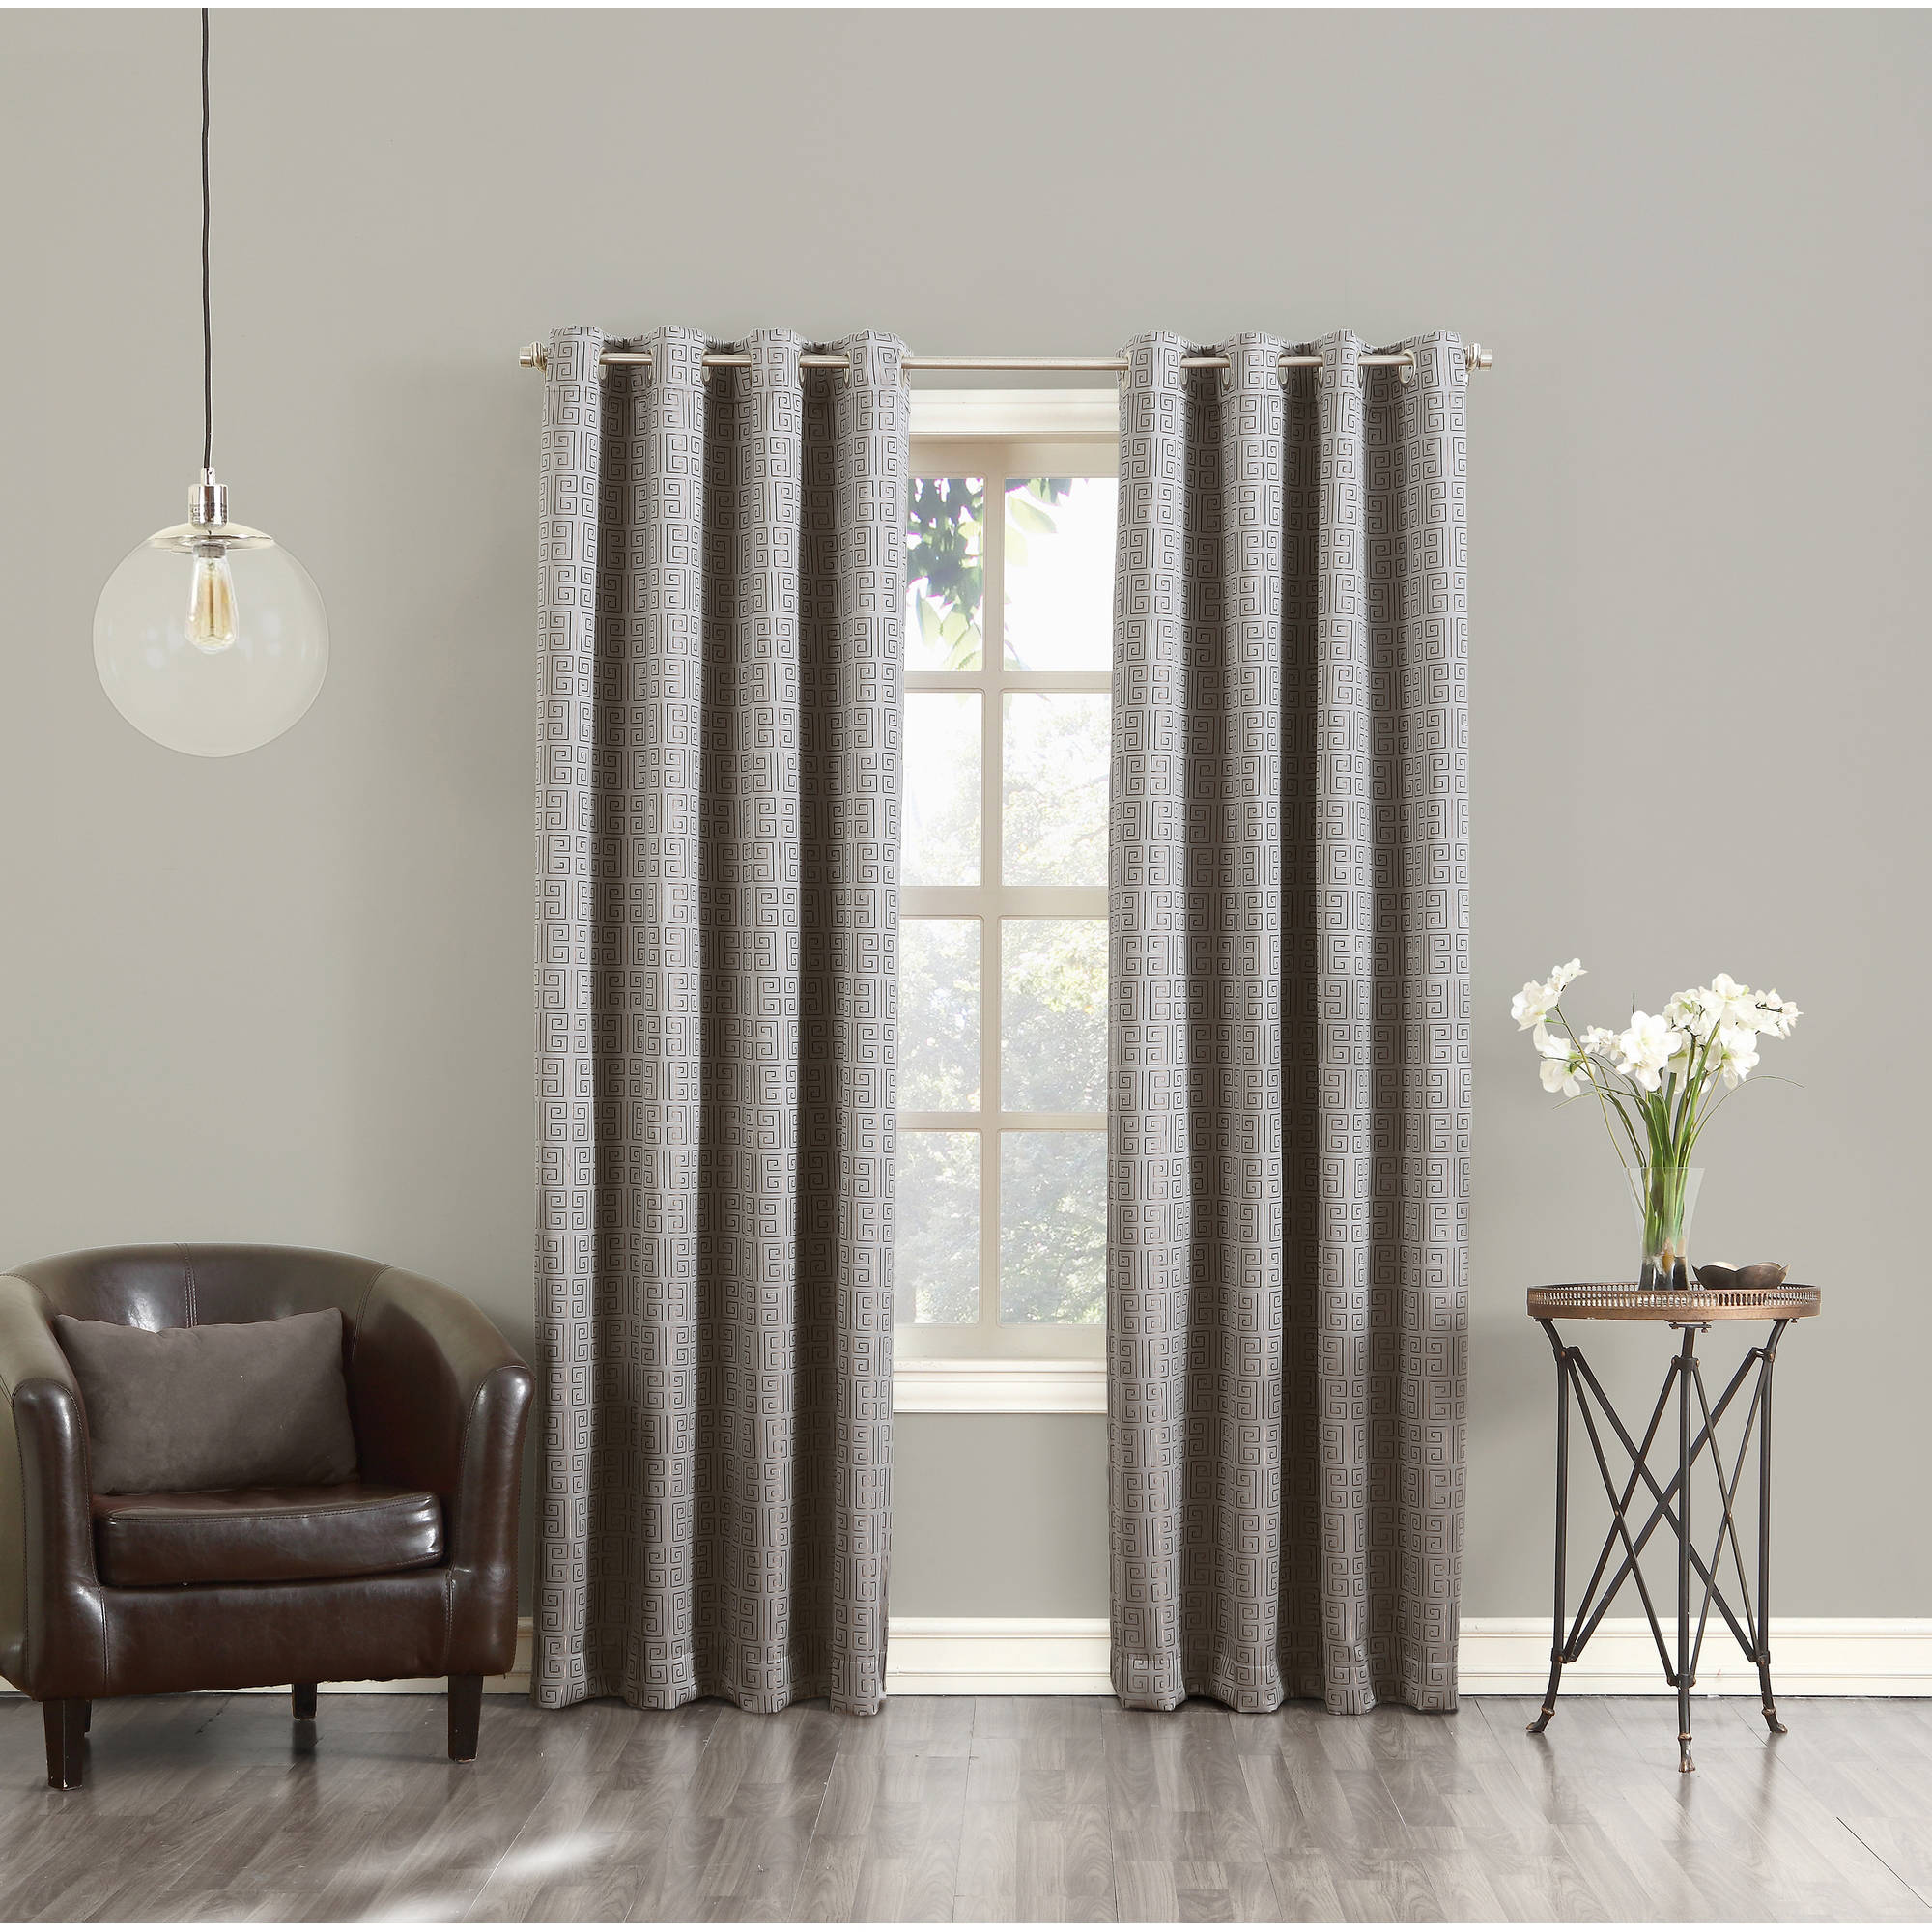 Sun Zero Tracie Blackout Energy Efficient Grommet Curtain Panel